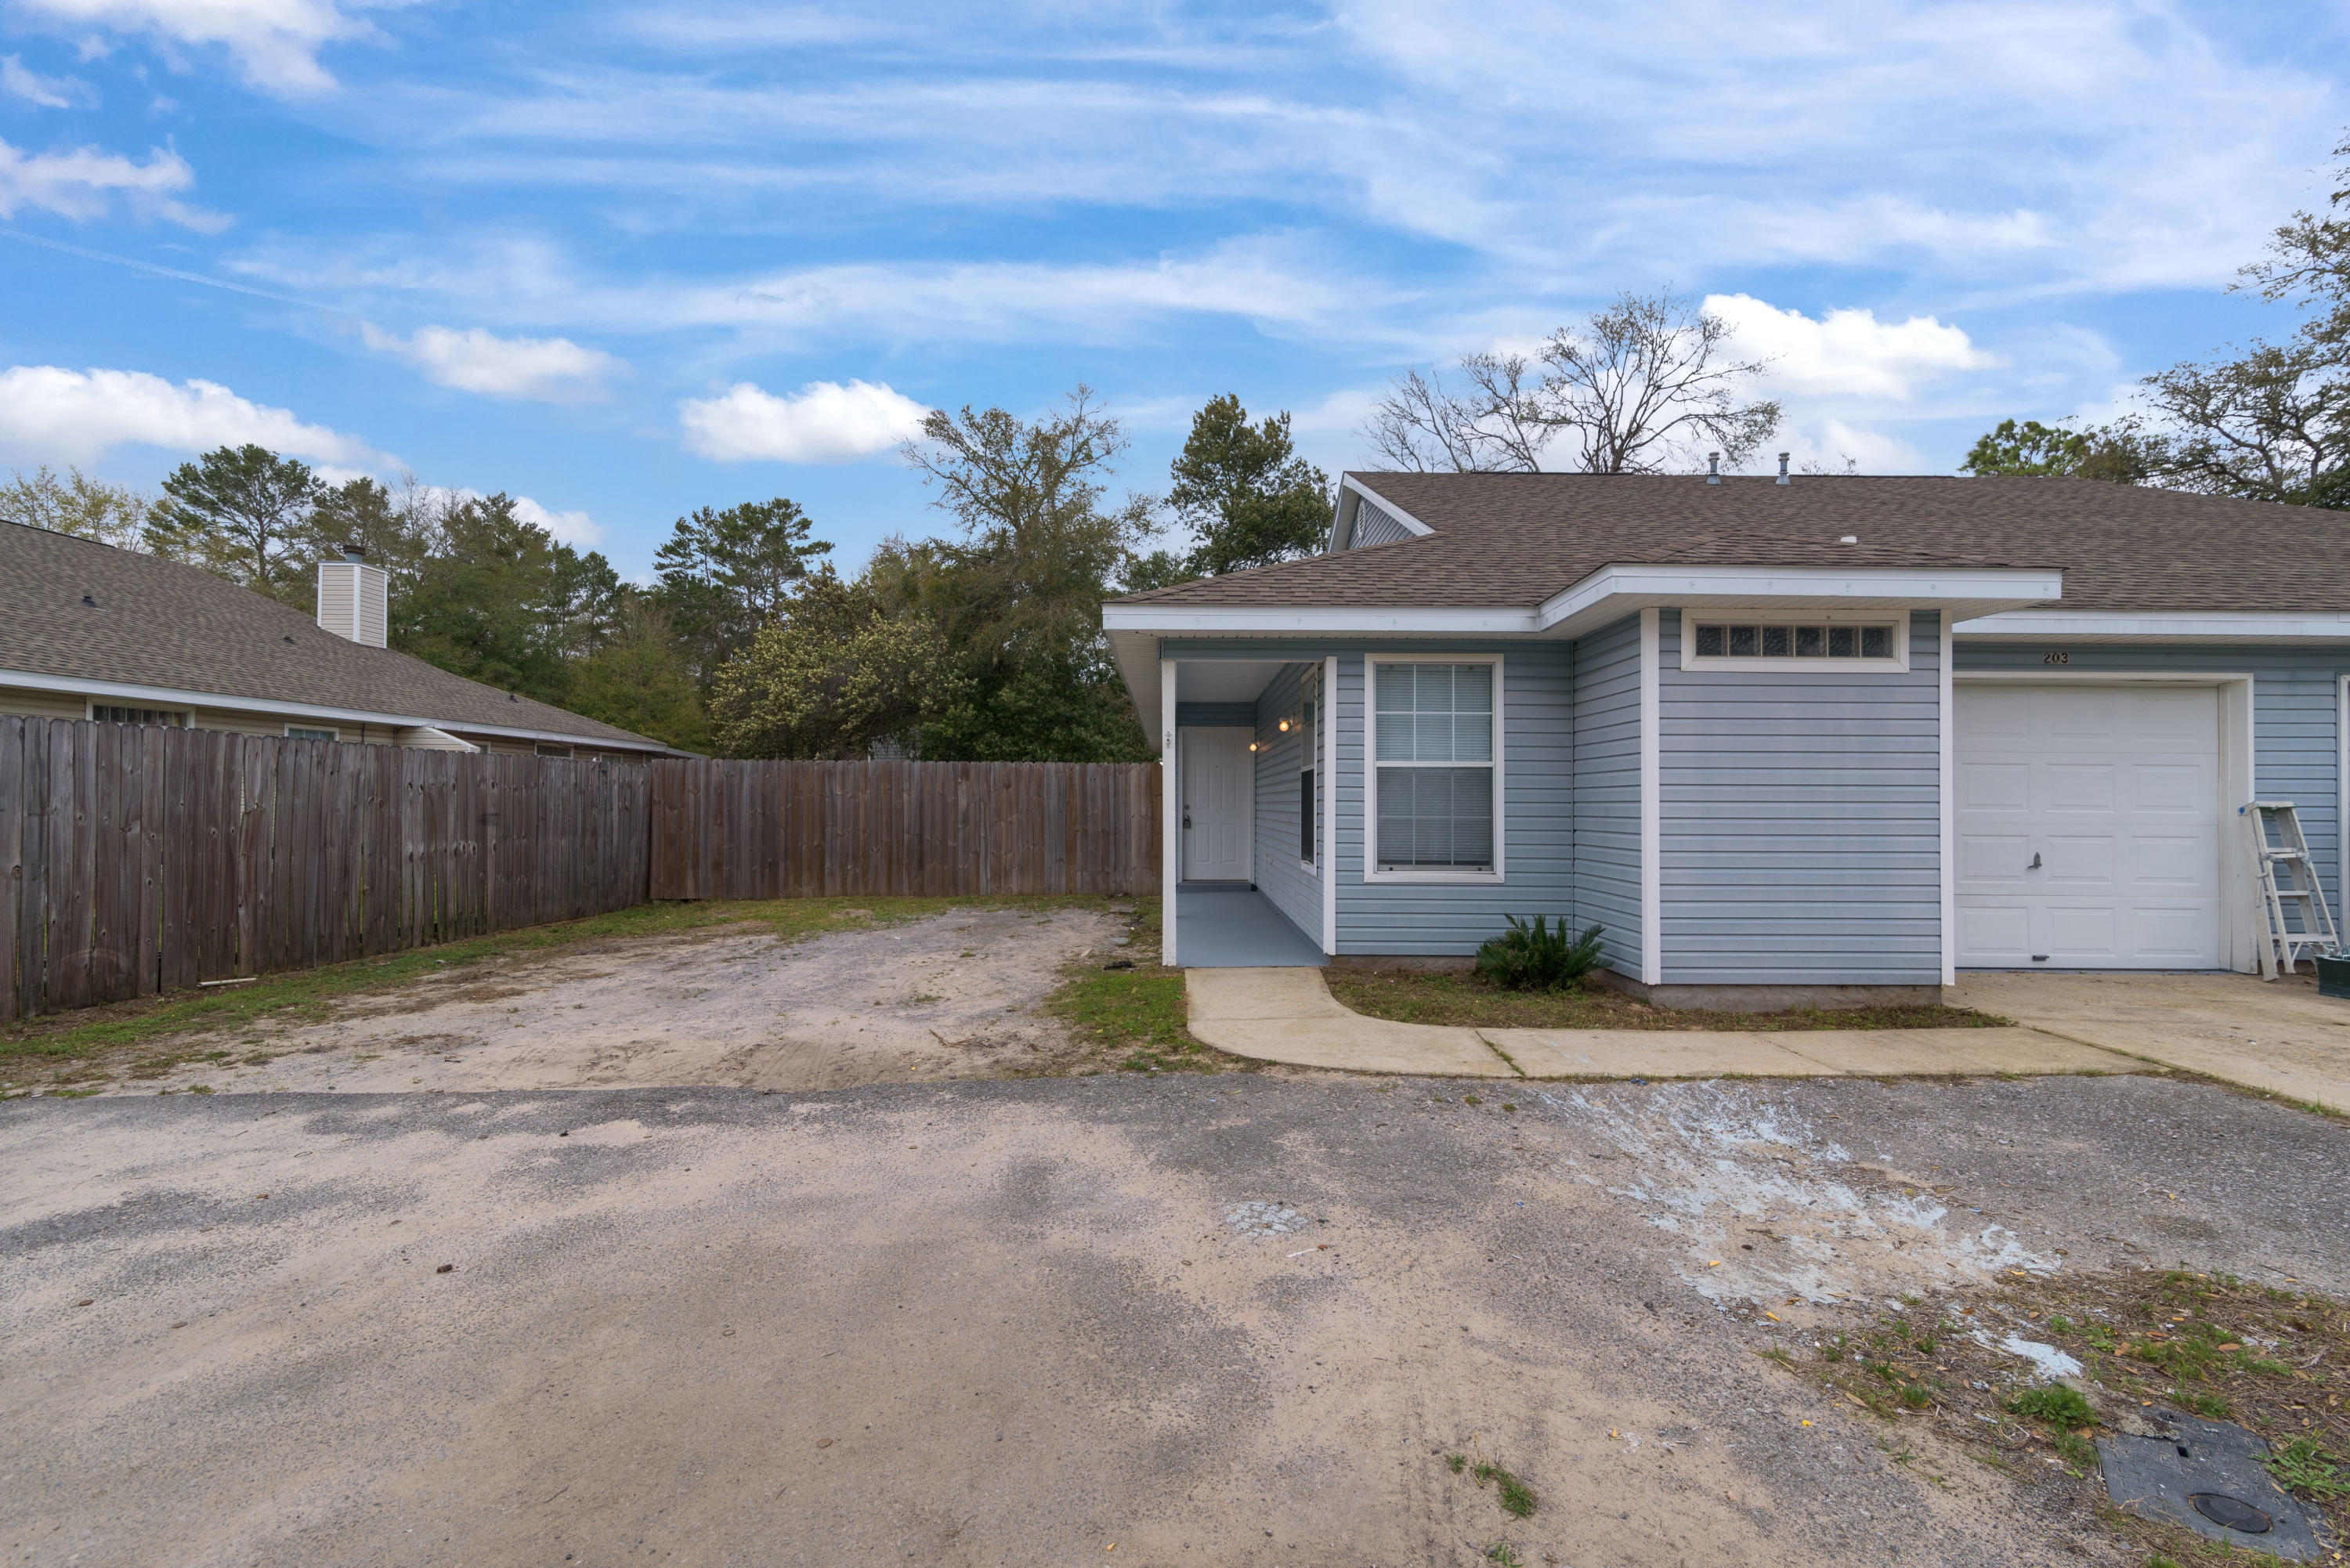 Photo of home for sale at 203 Jenna Jessi, Fort Walton Beach FL